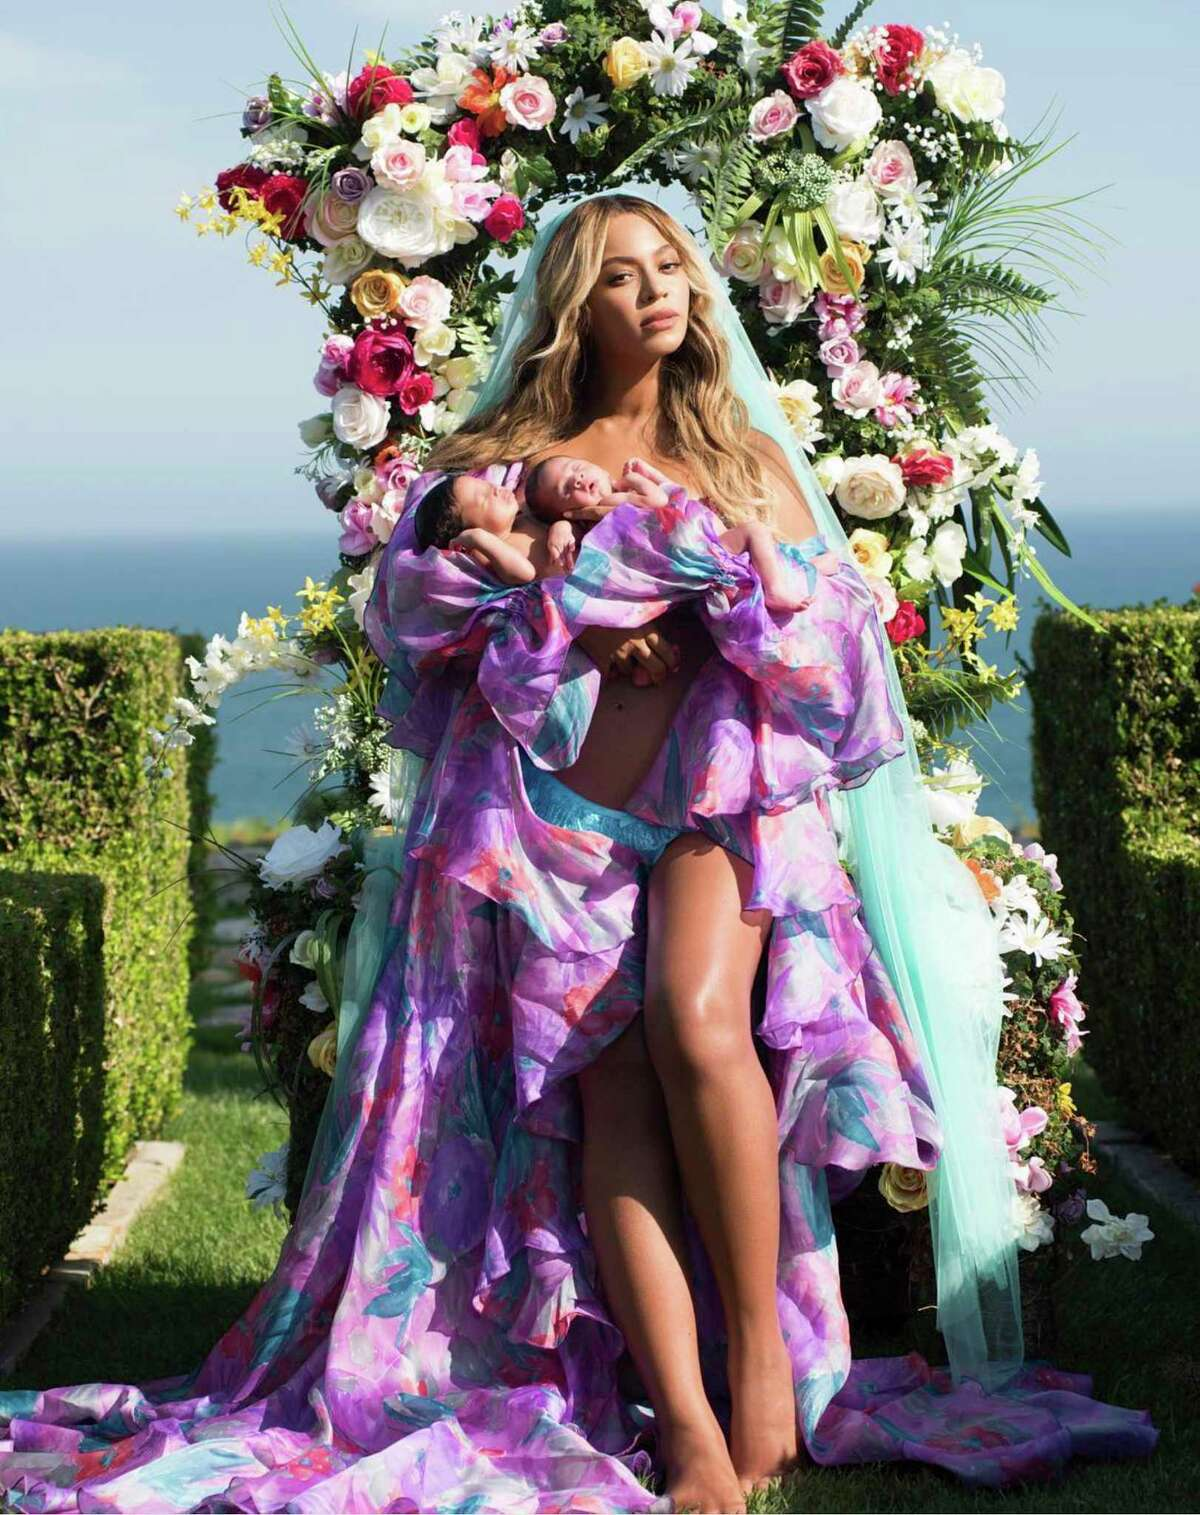 Alternatively: Post-baby Beyonce announcementWhat you'll need: See previous slide - however for this you'll need actual babies (however many you have handy will work).